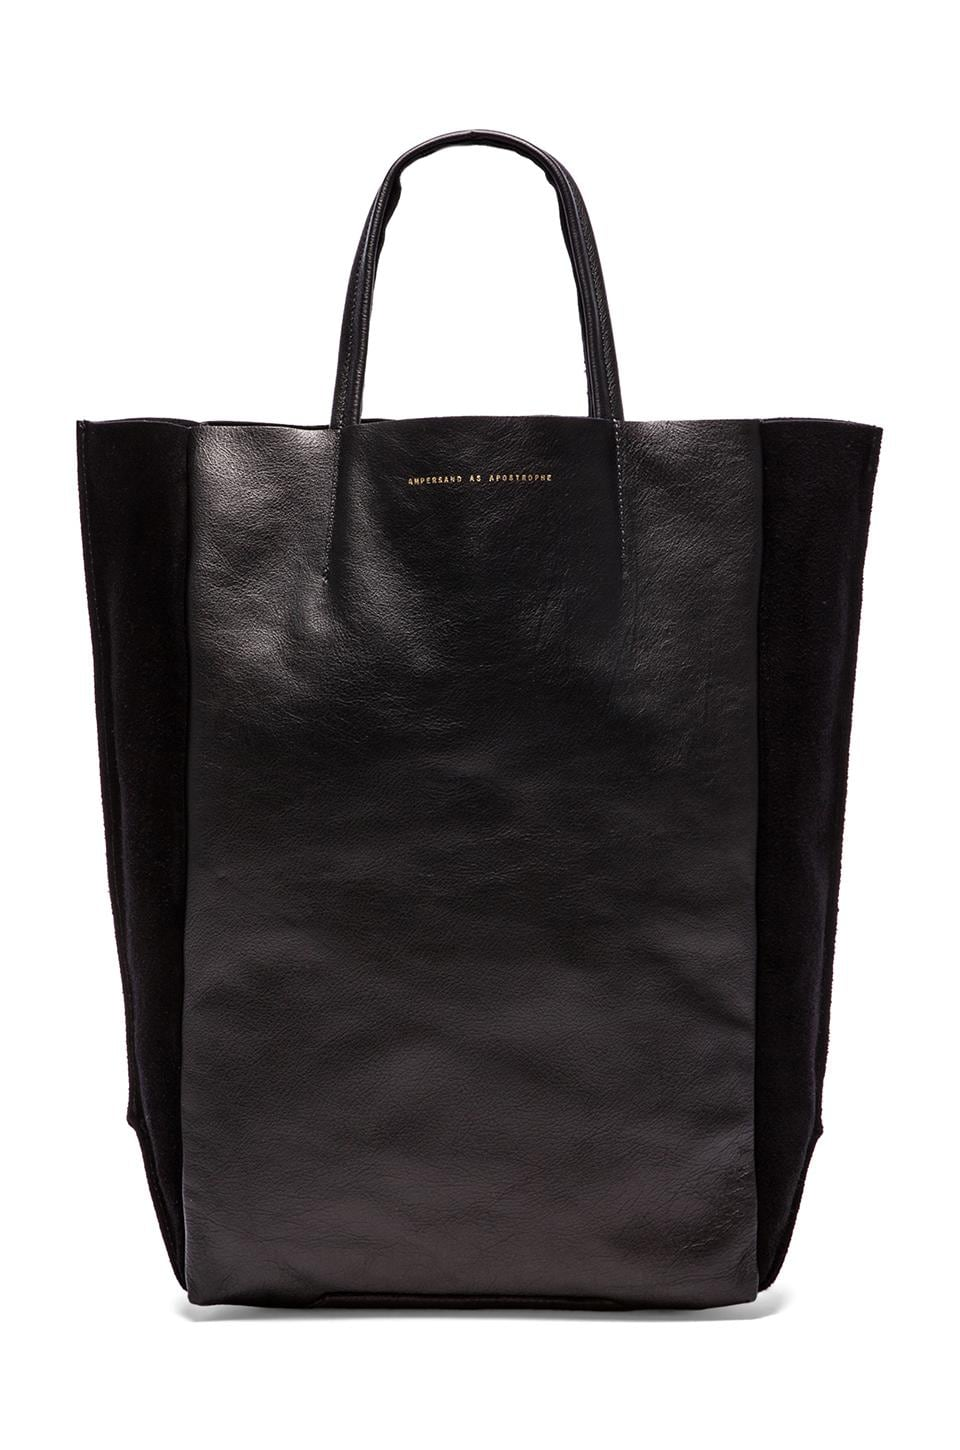 AMPERSAND AS APOSTROPHE Tall Tote Suede-Out in Black